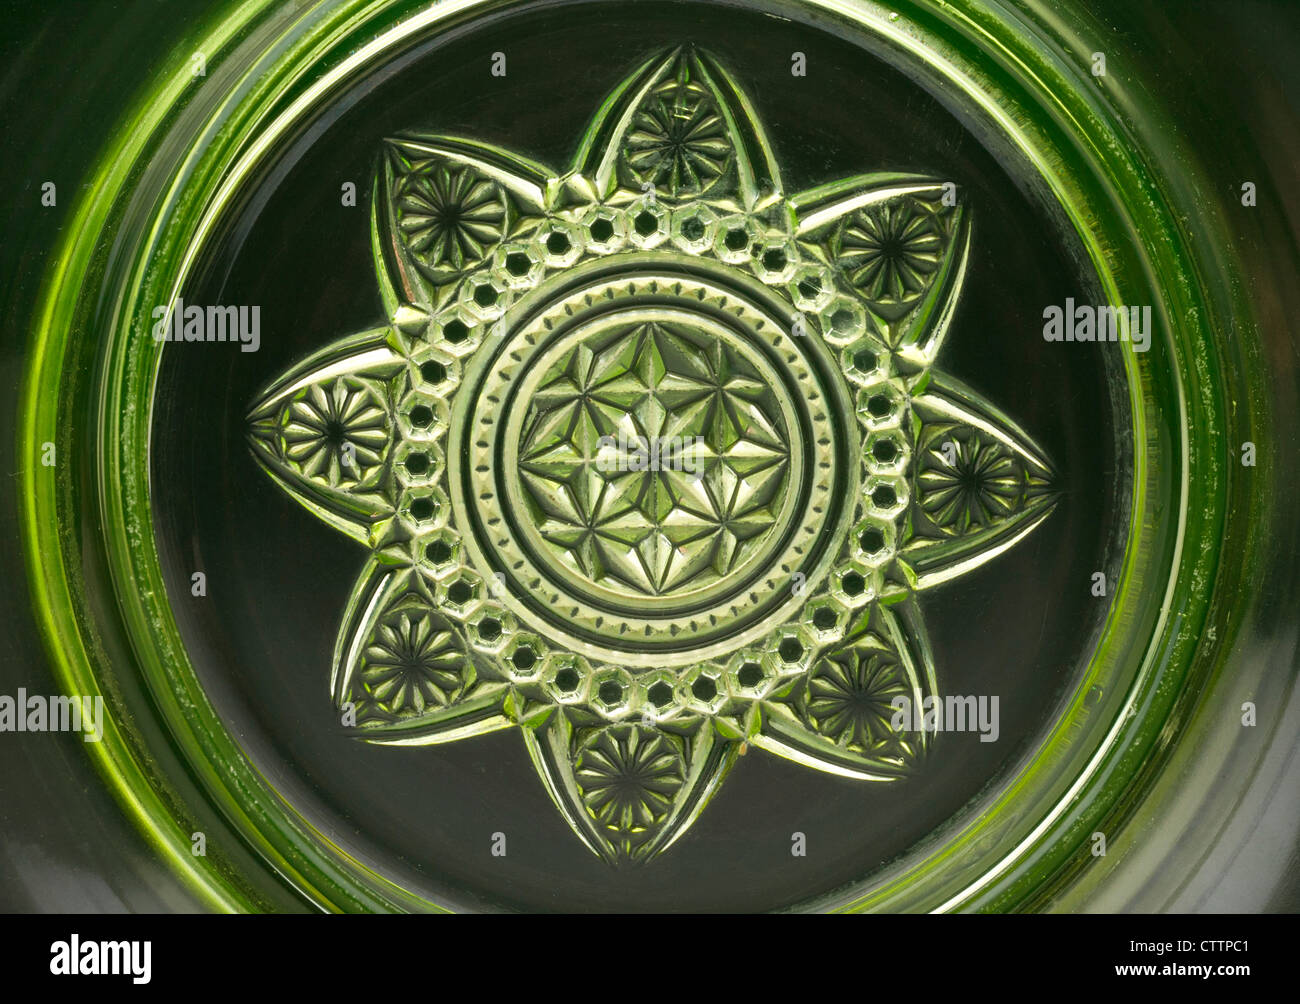 Bottom of a Ranson 'gold band' Vaseline 'uranium glass' round covered butter dish produced by the - Stock Image